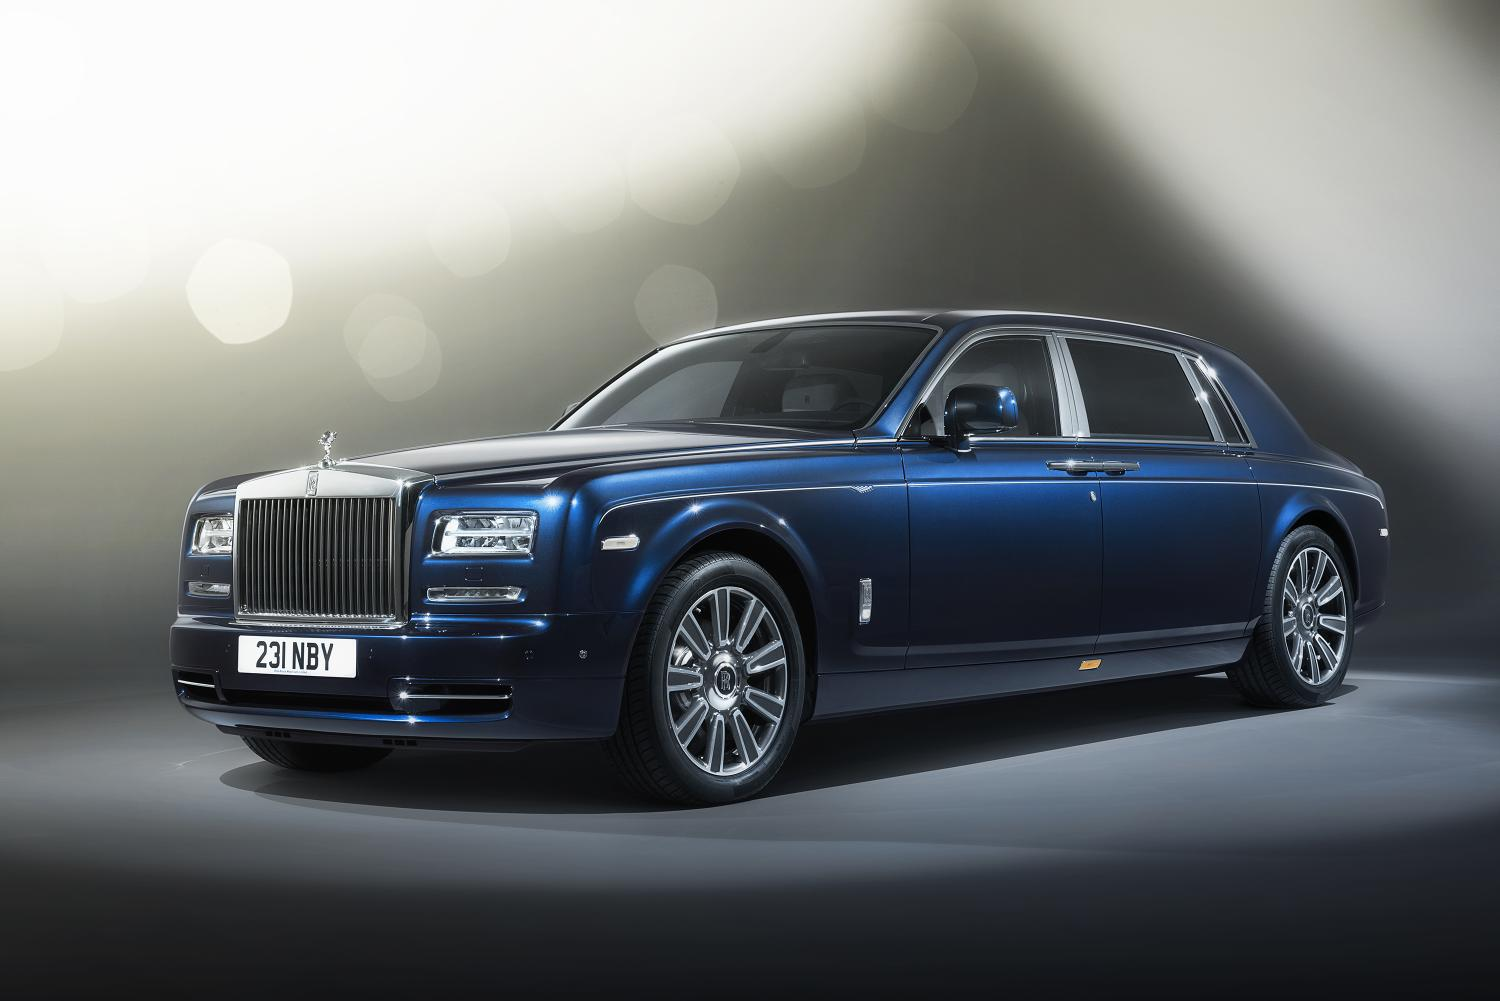 Rolls Royce Phantom db